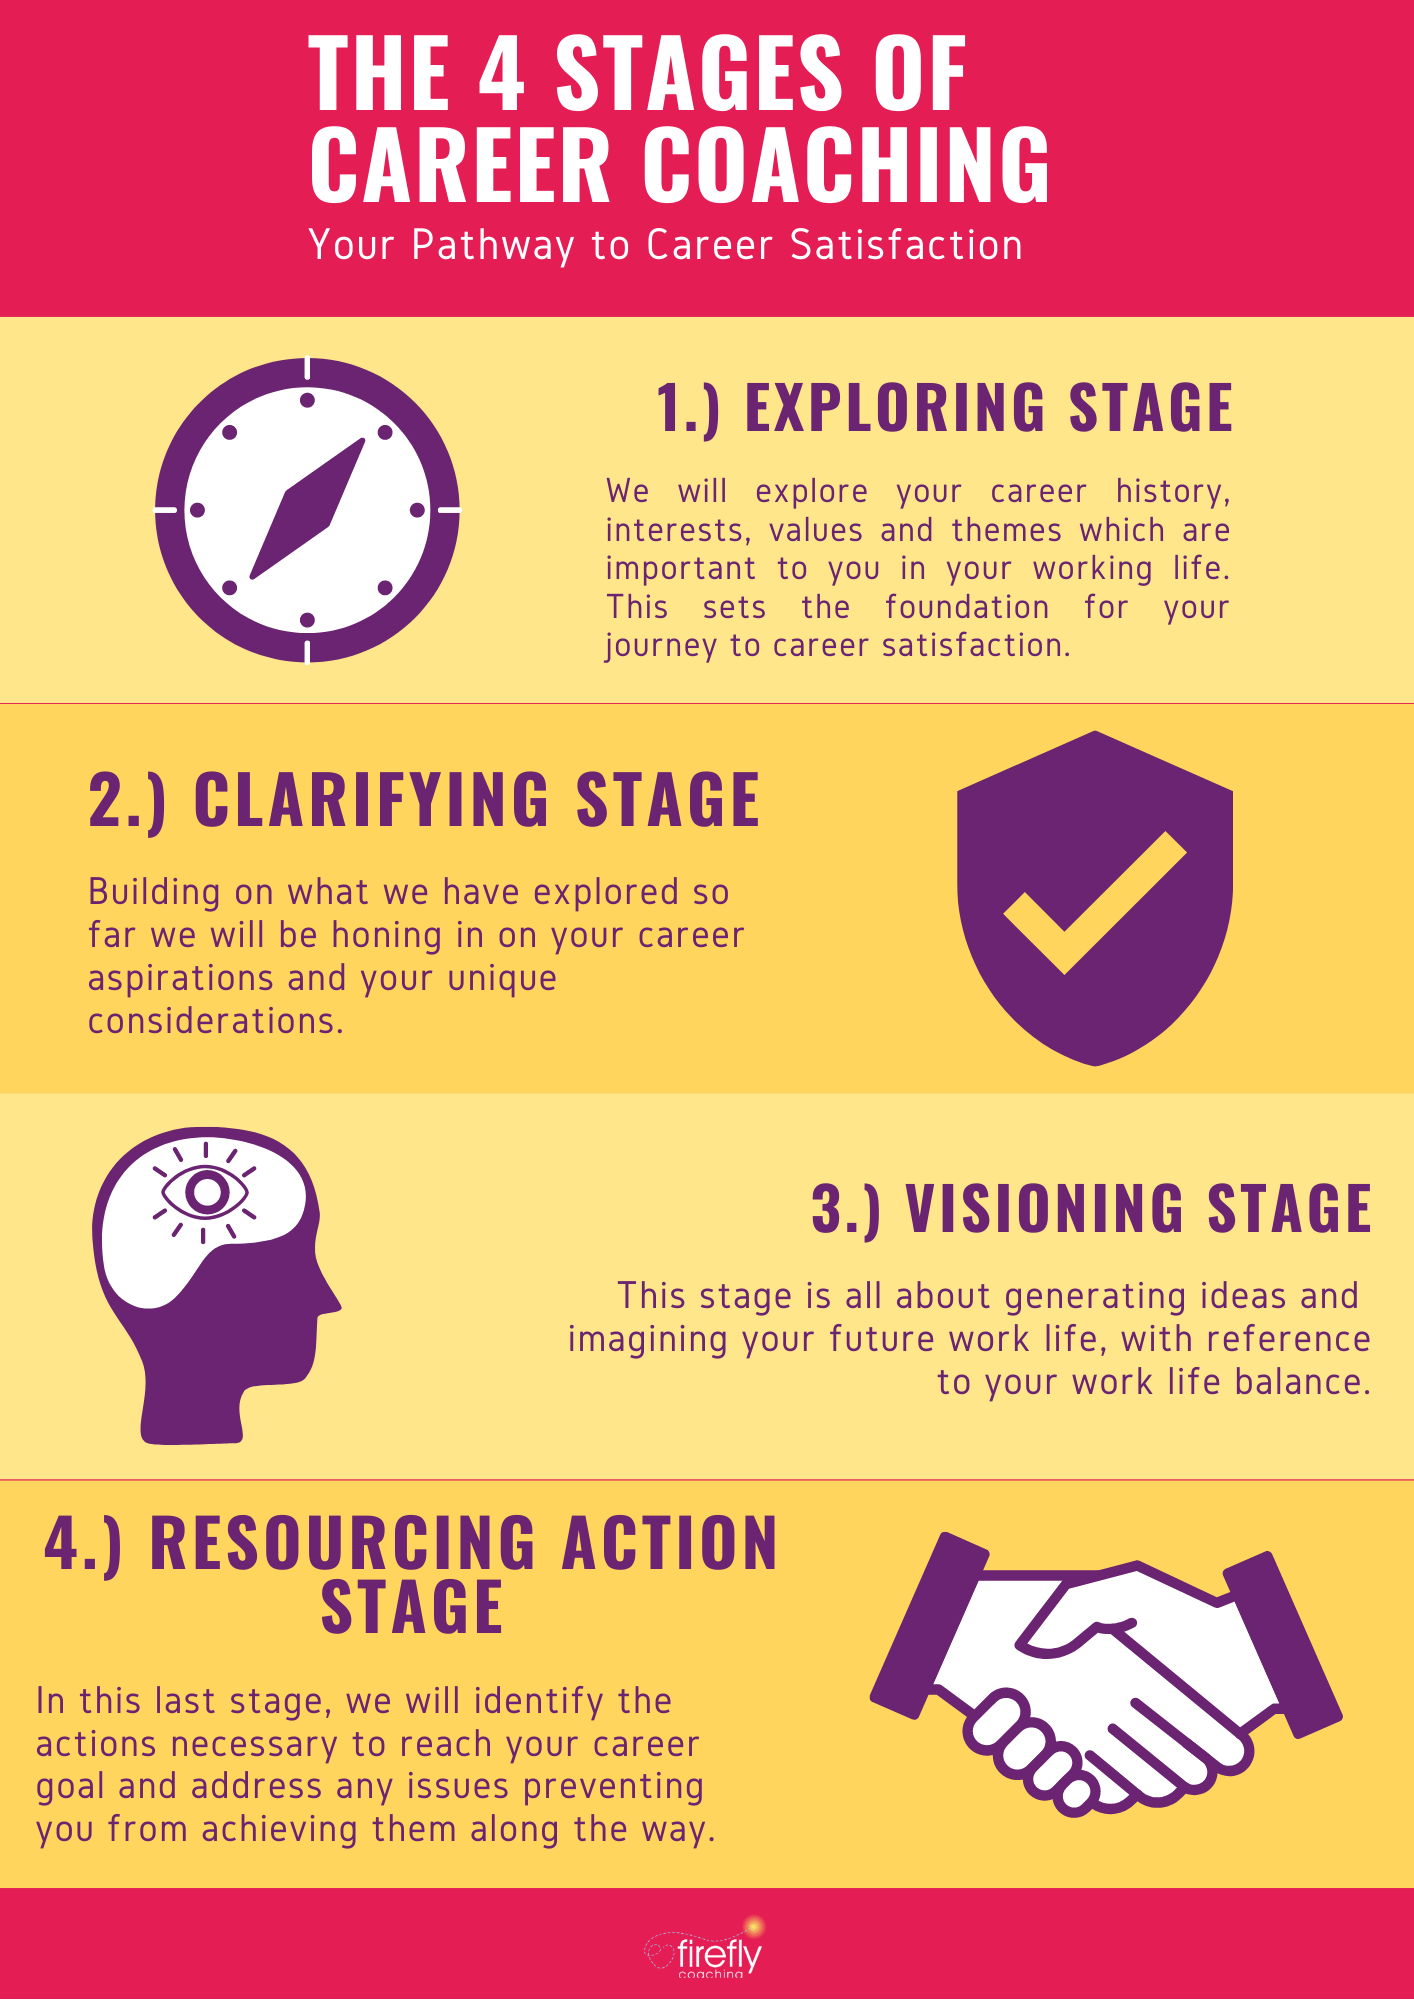 The 4 Stages of Career Coaching